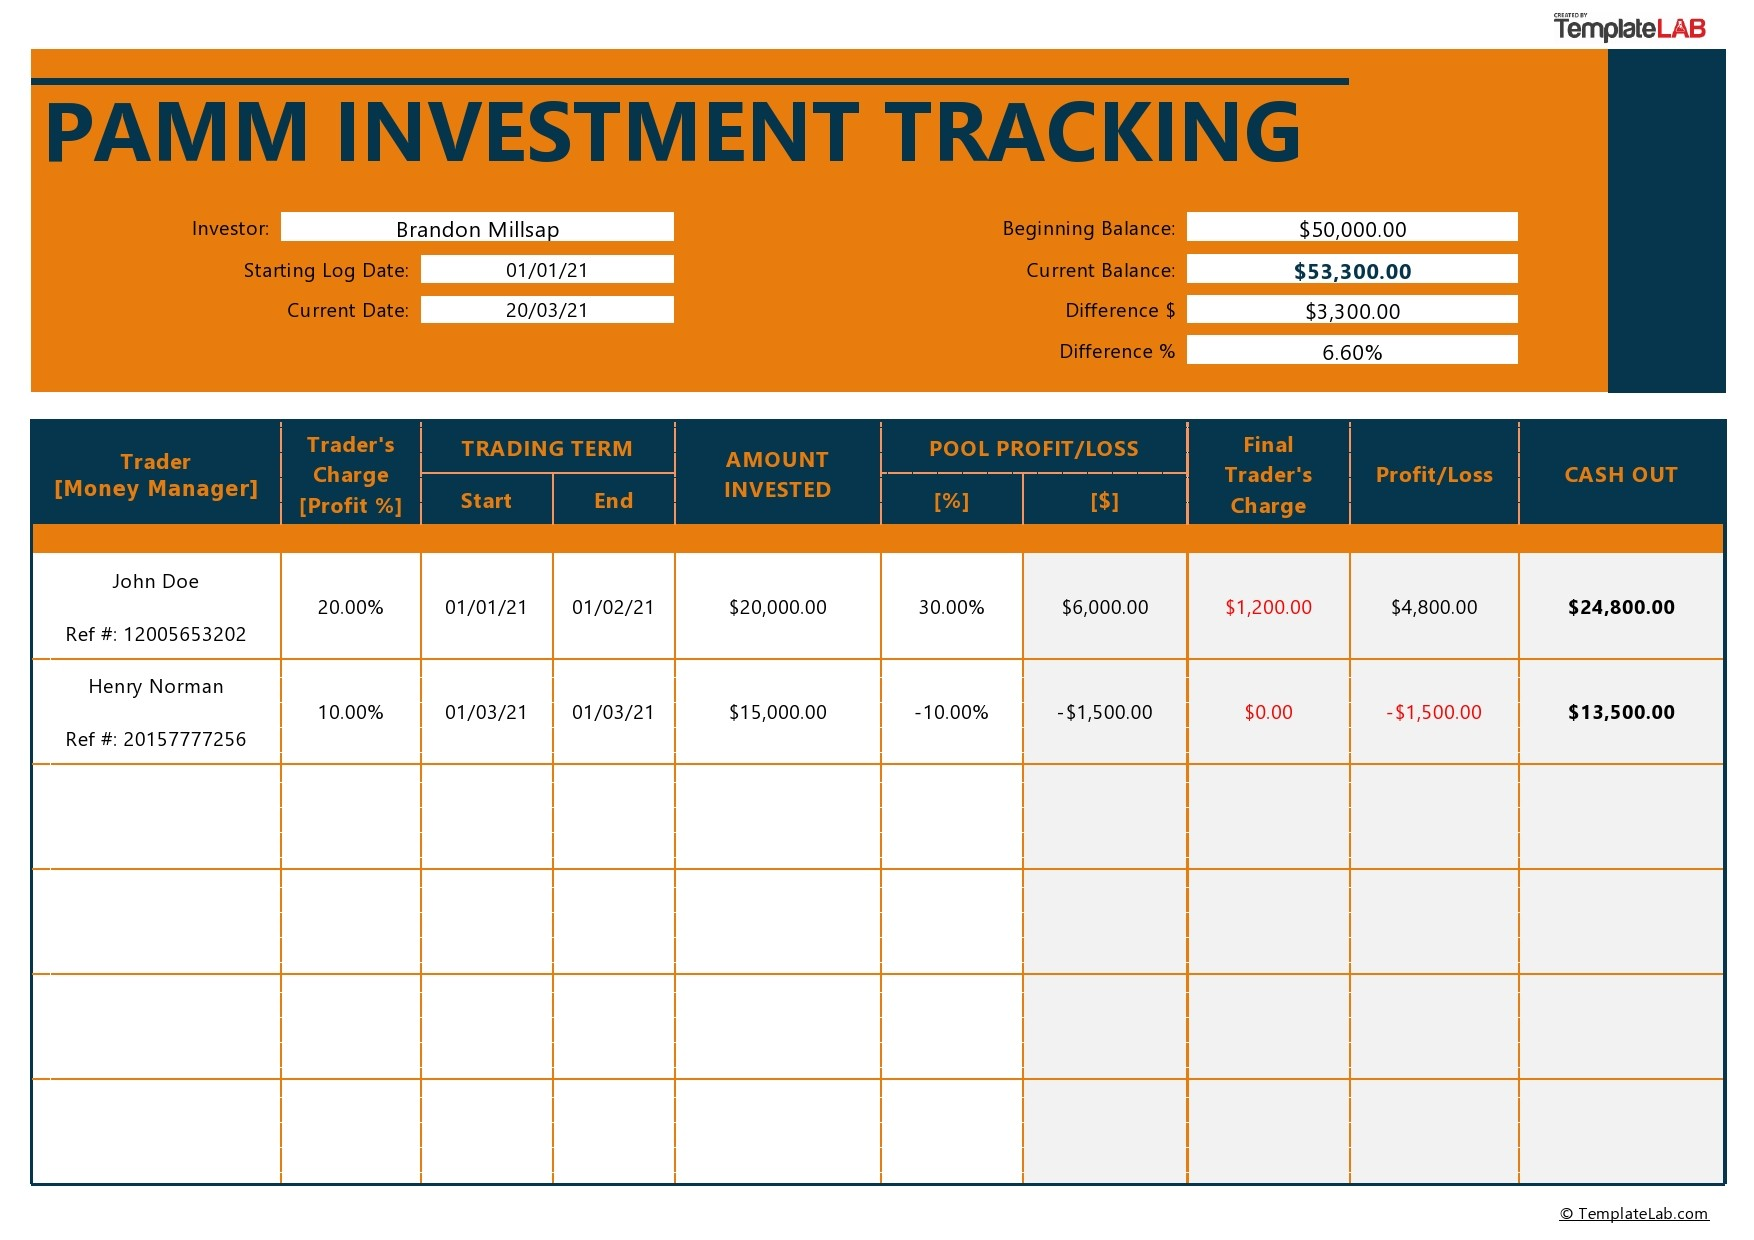 Free PAMM Investment Tracking Spreadsheet - TemplateLab.com